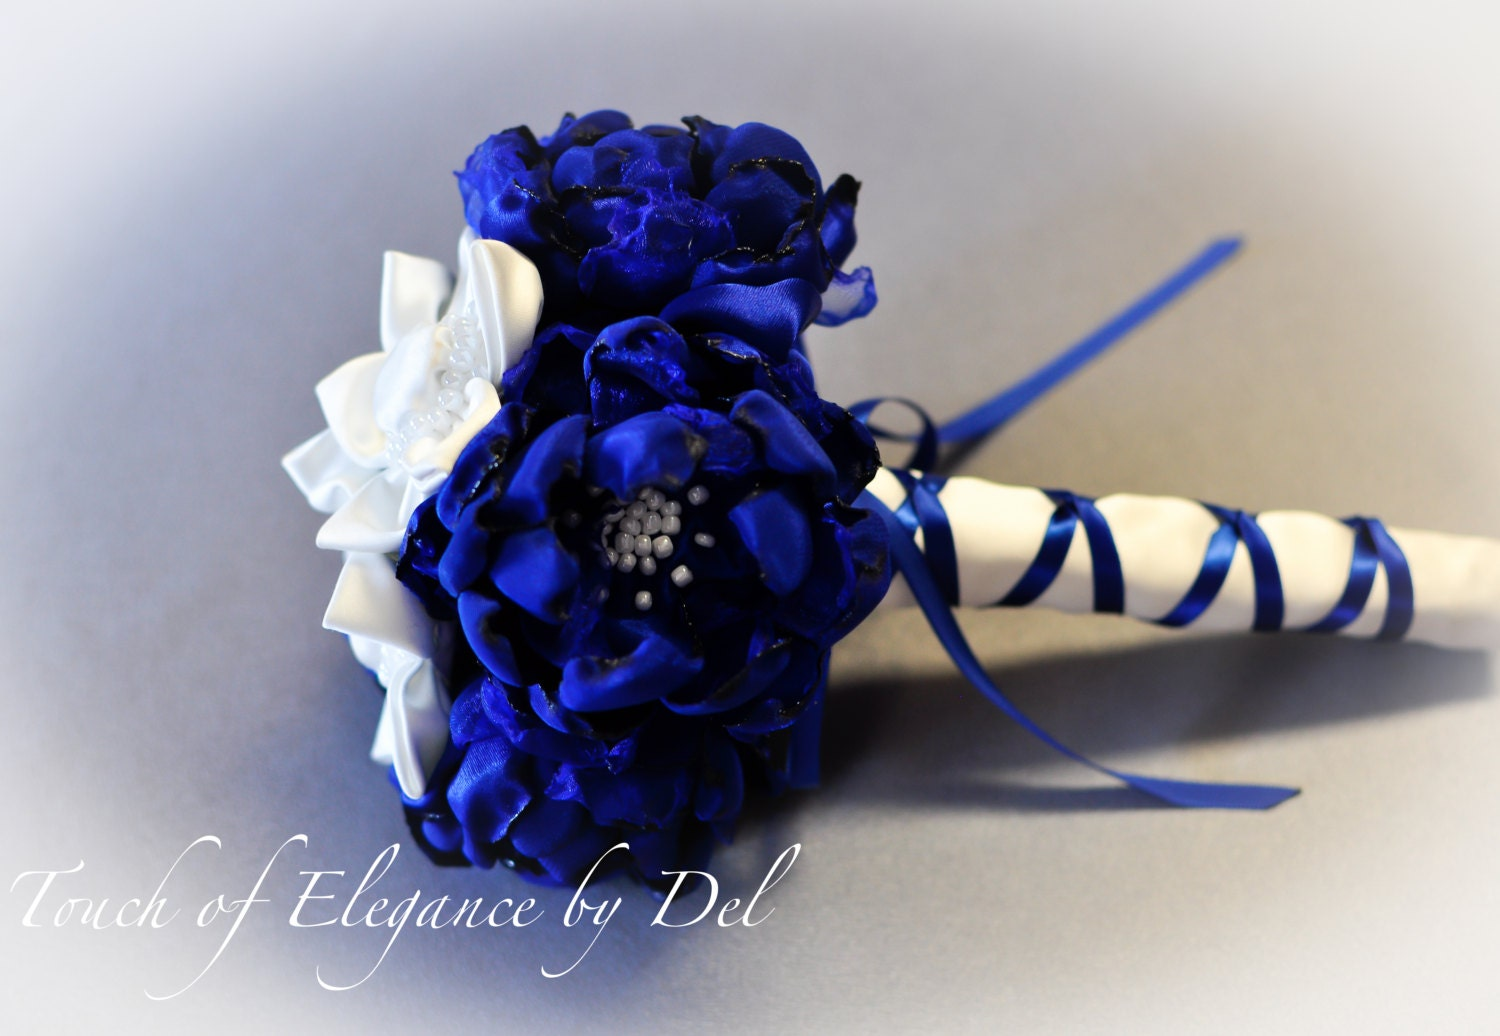 Stunning royal blue flowers for weddings images styles ideas famous royal blue wedding flowers bouquet images wedding and izmirmasajfo Images